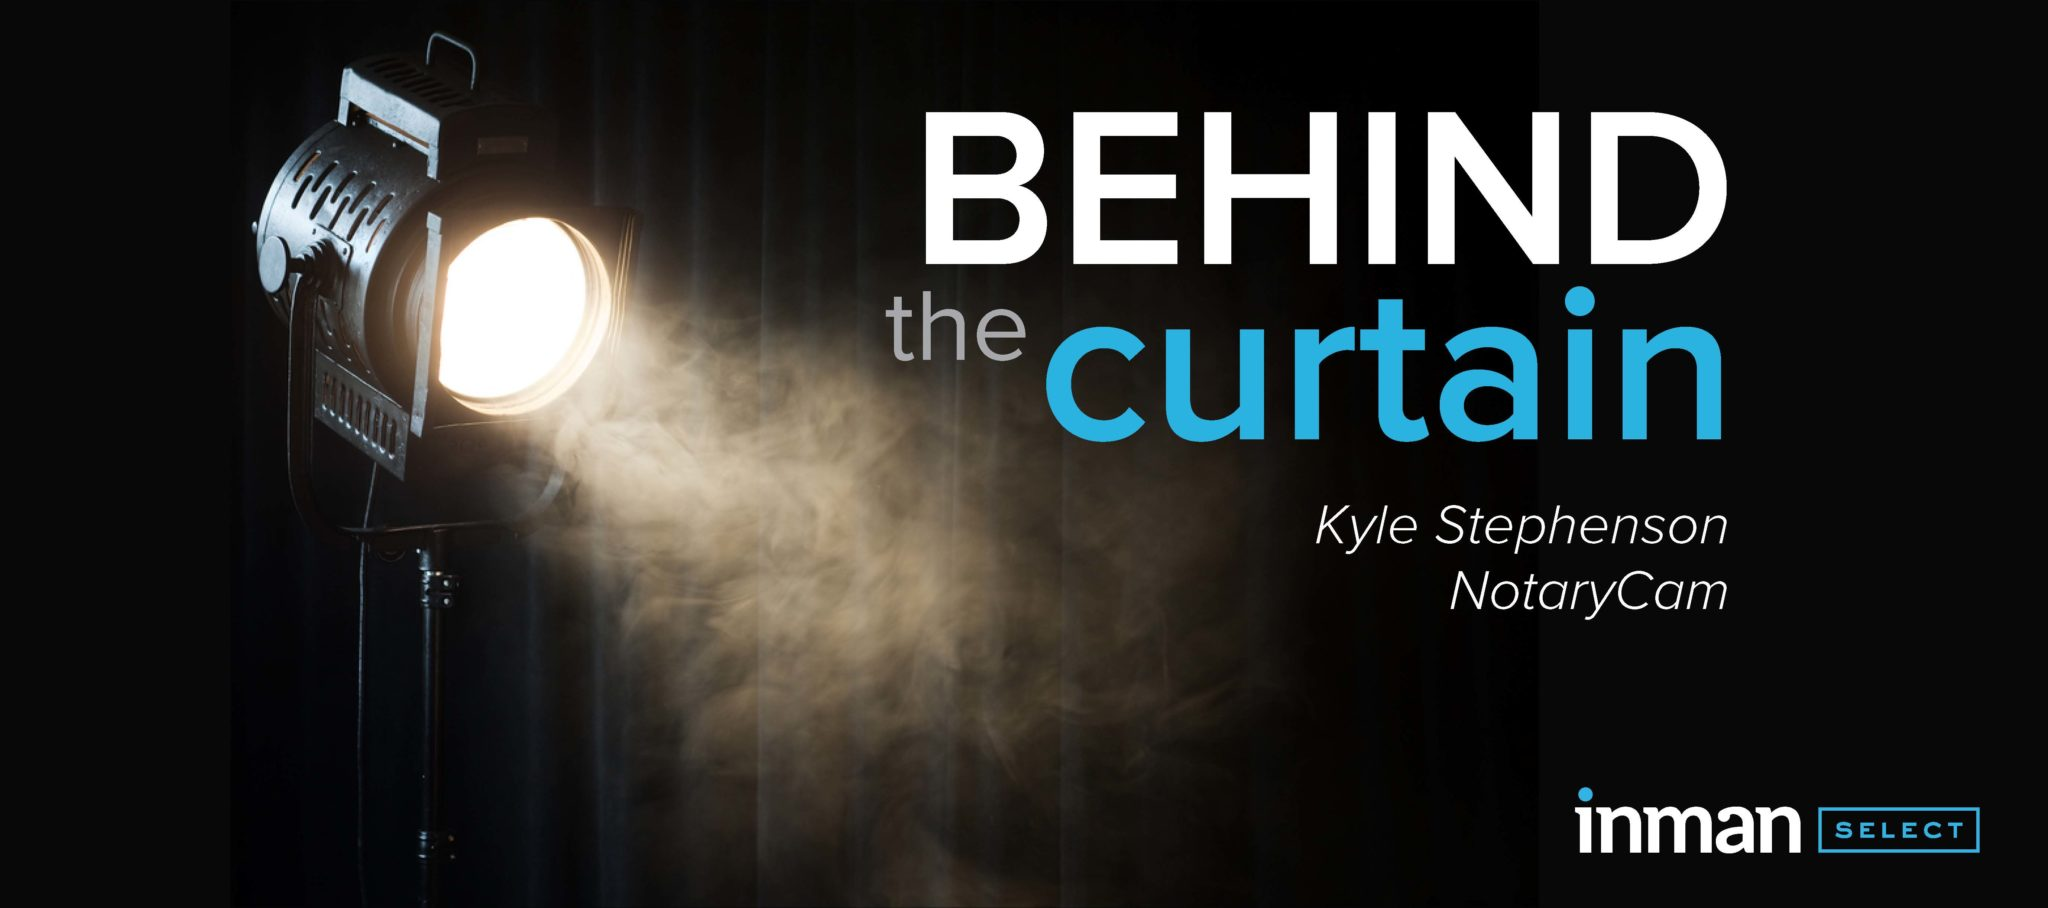 Kyle Stephenson: 'Are we doing enough in the industry to get traction?'